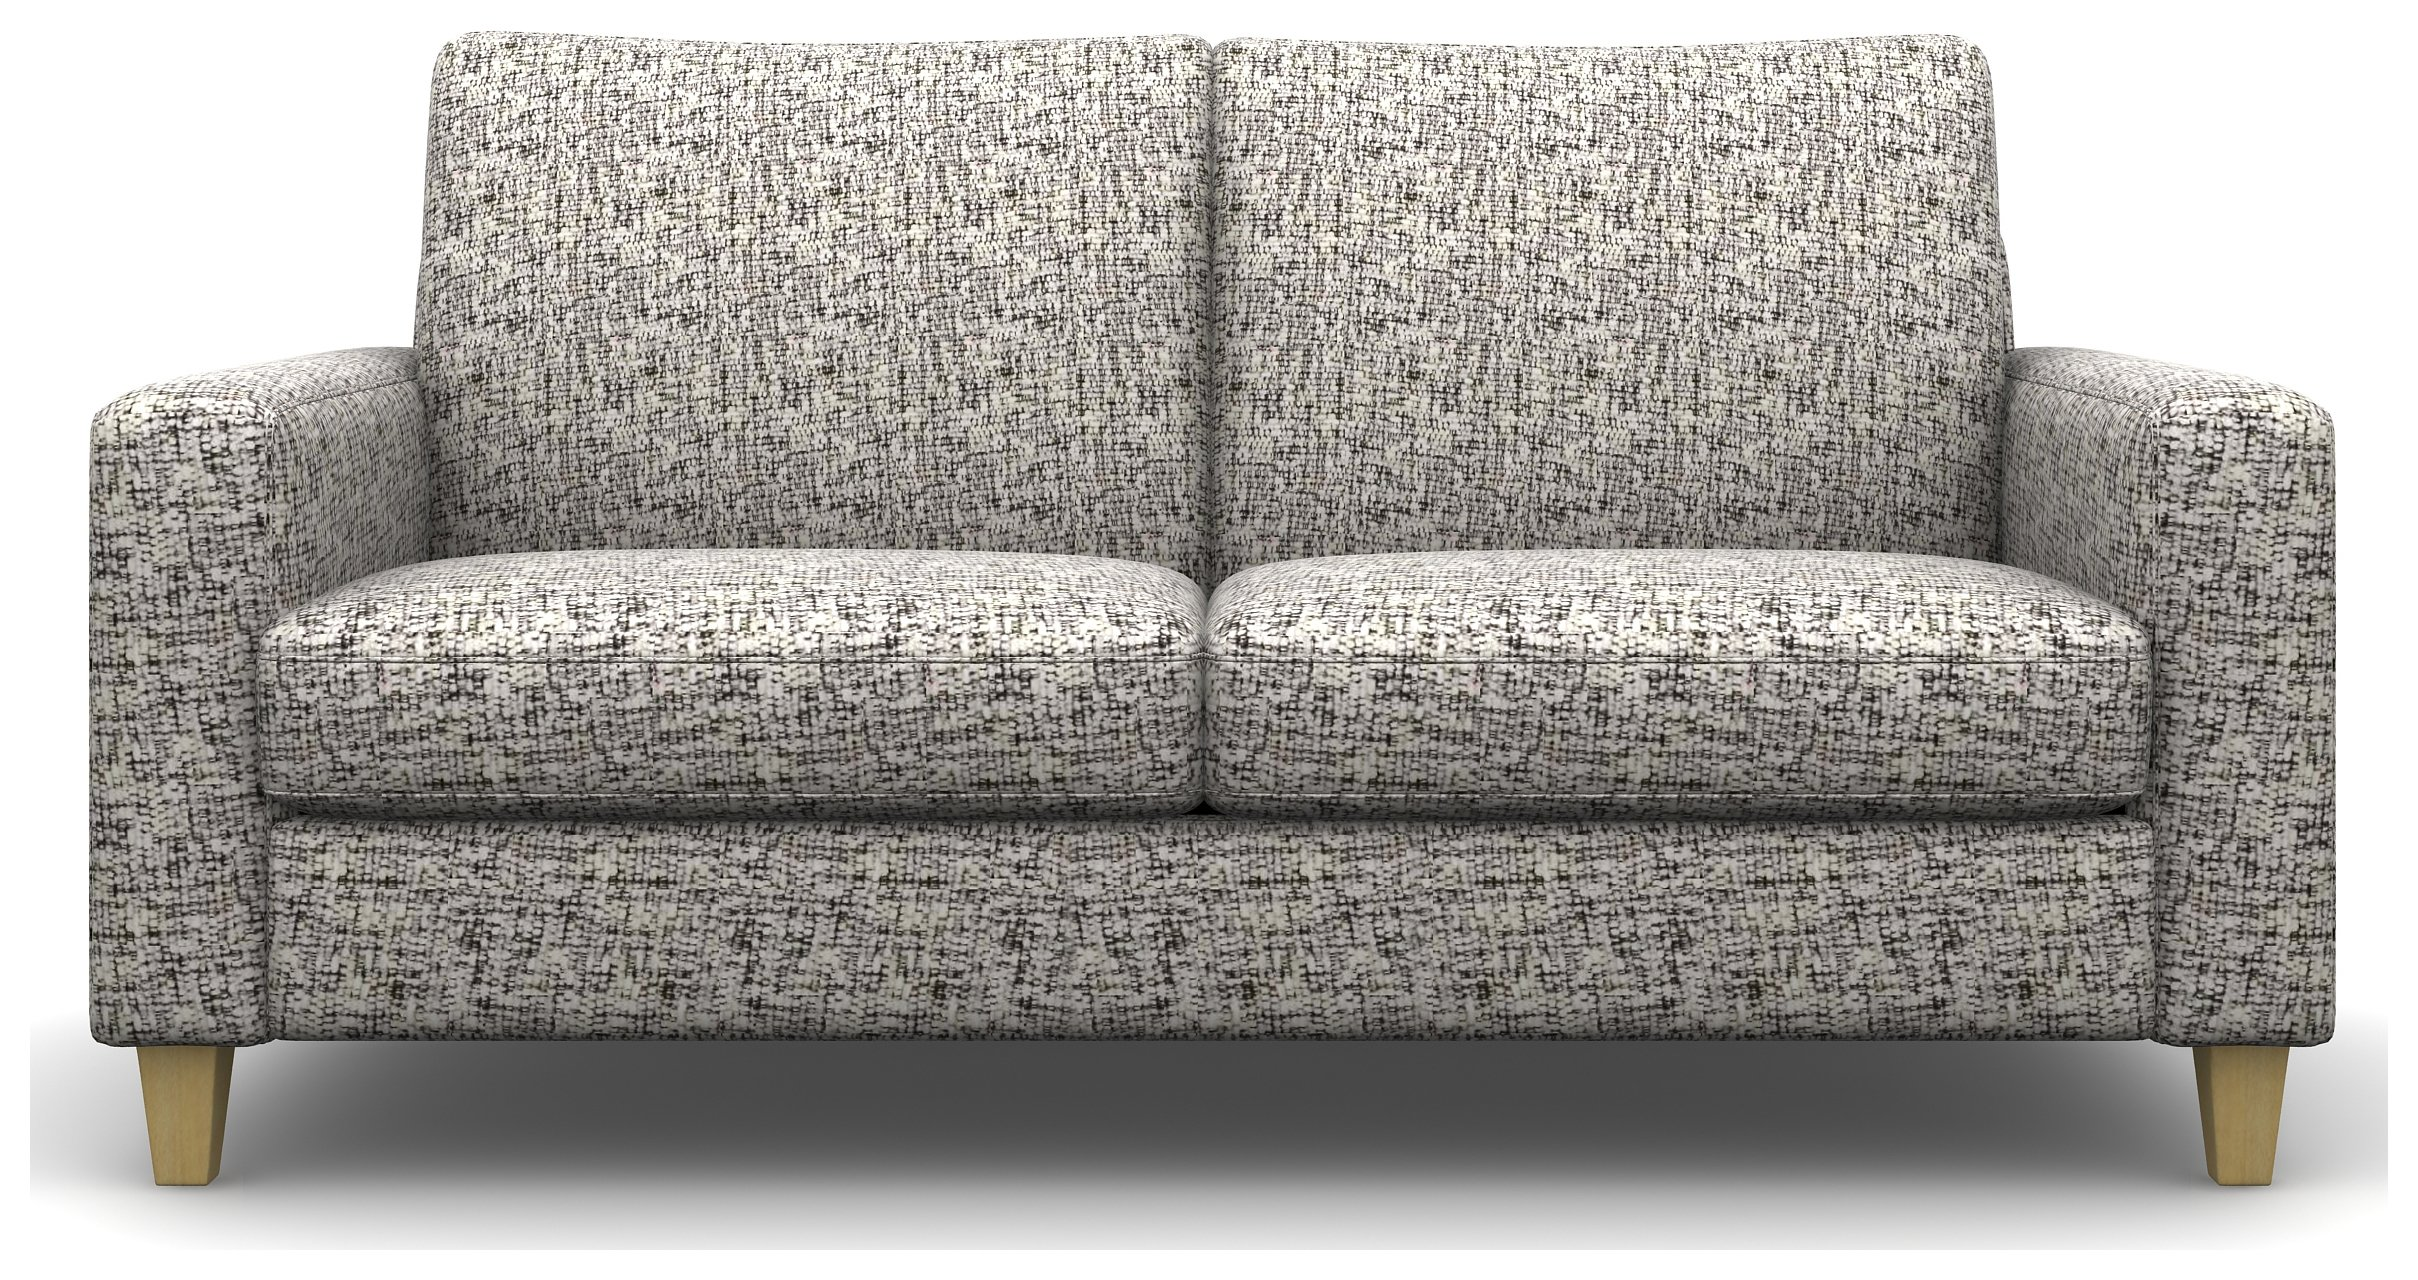 Heart of House Harrison 3 Seater Fabric Sofa - Silver.